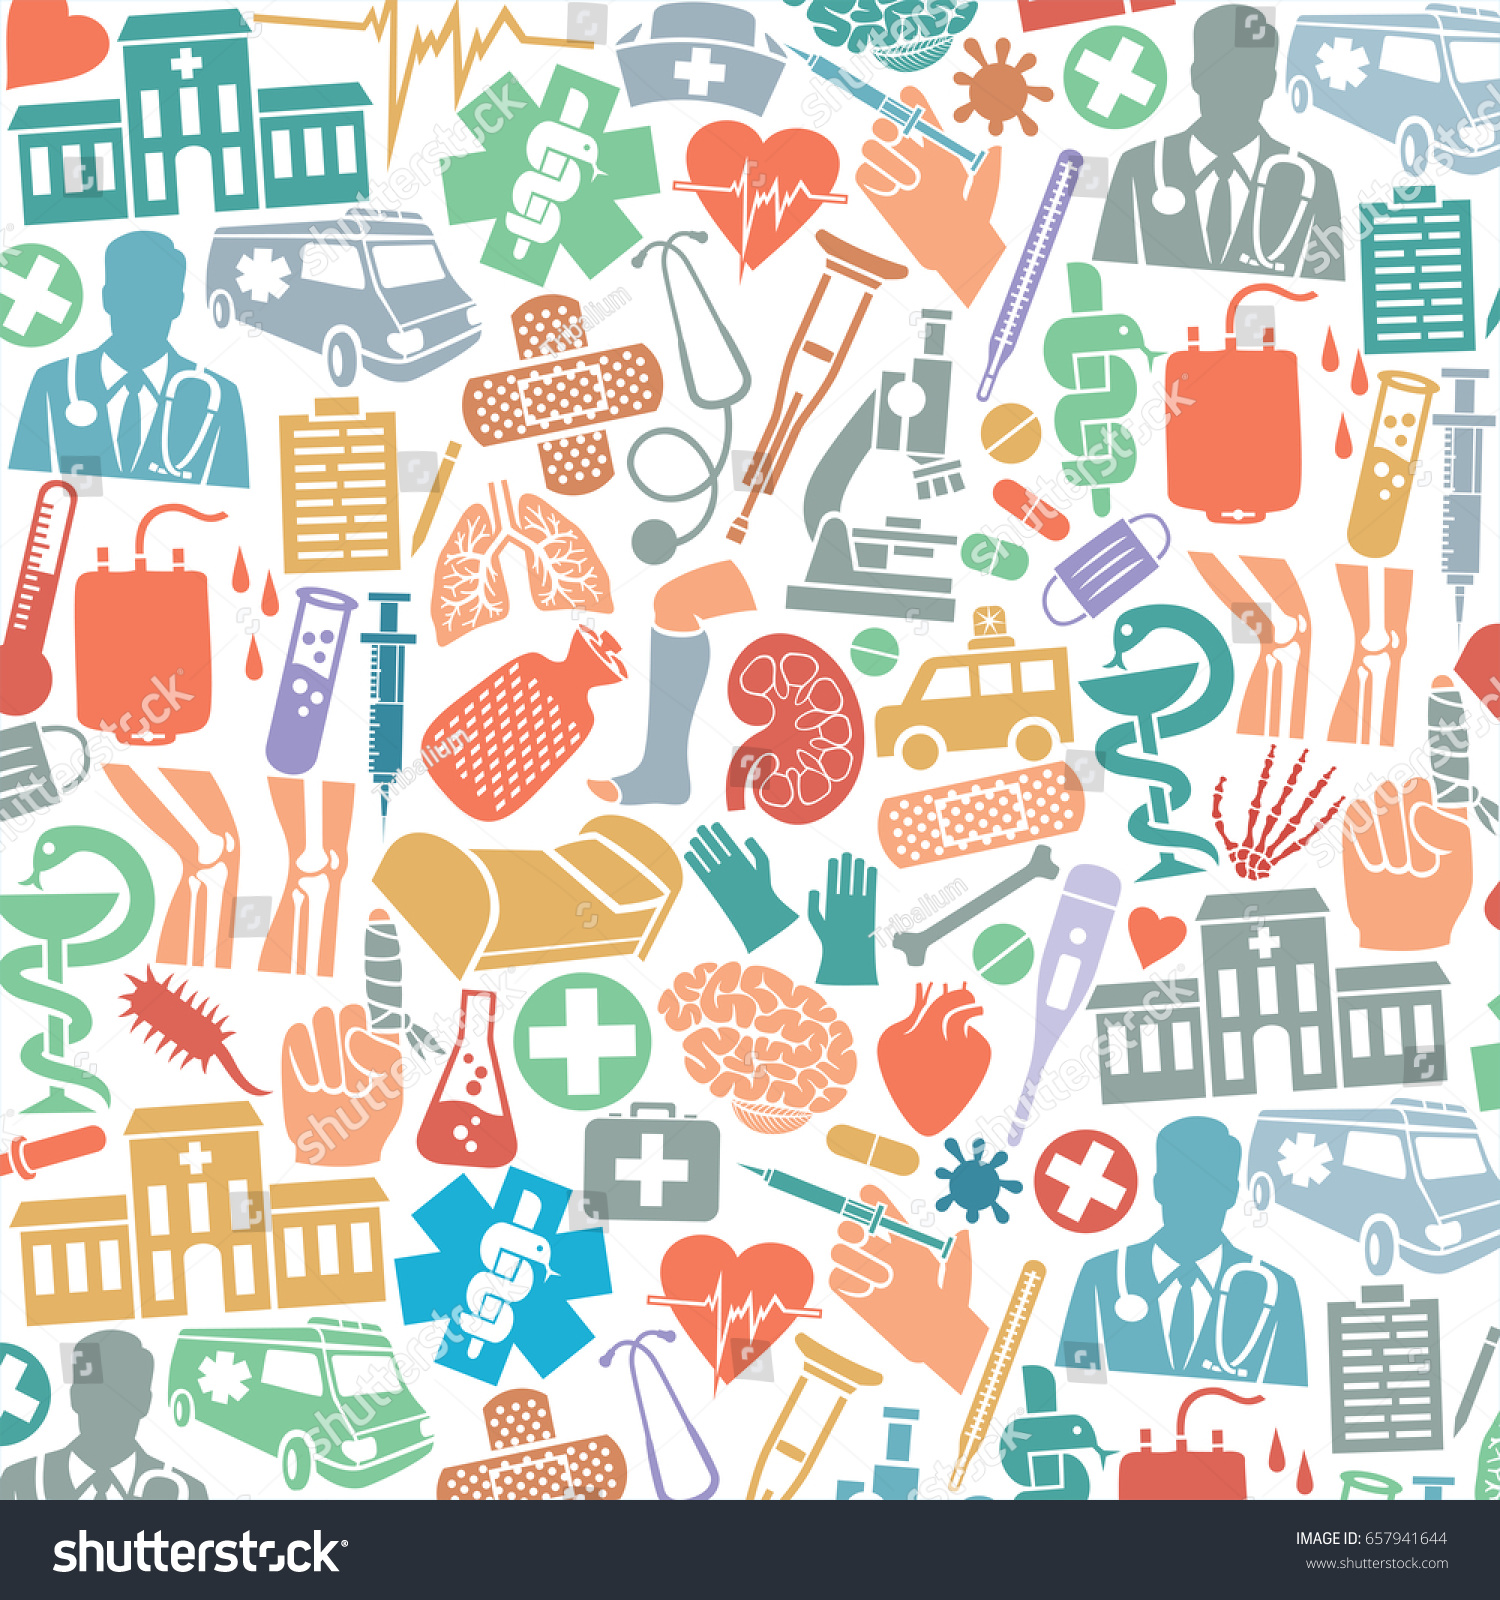 background pattern medical icons snake bowl stock vector 657941644